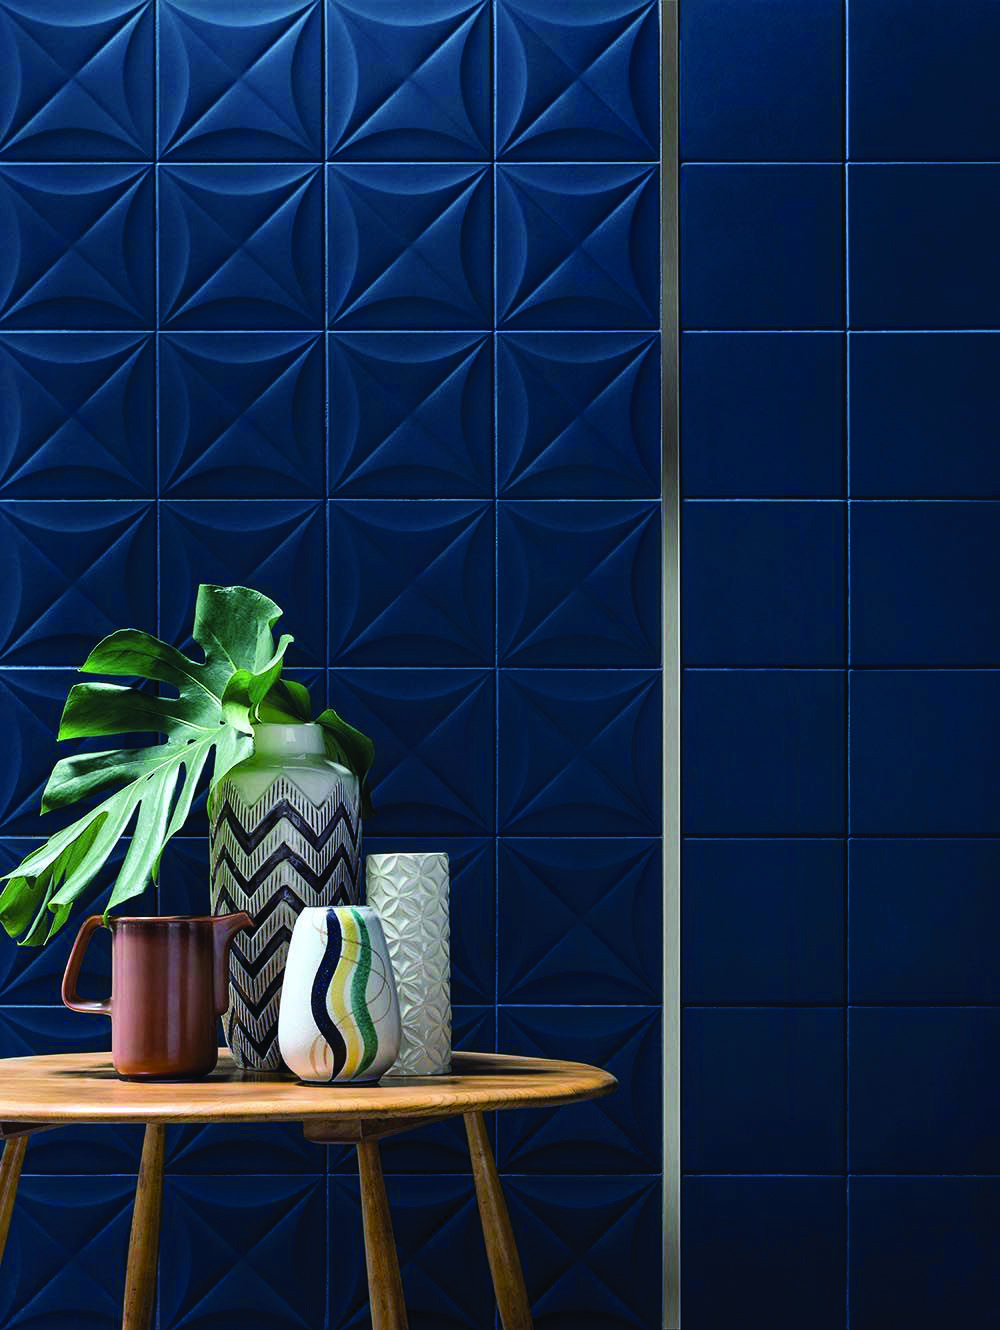 Restroom Ceramic Tile Design Suggestions 3d Wall Tiles Textured